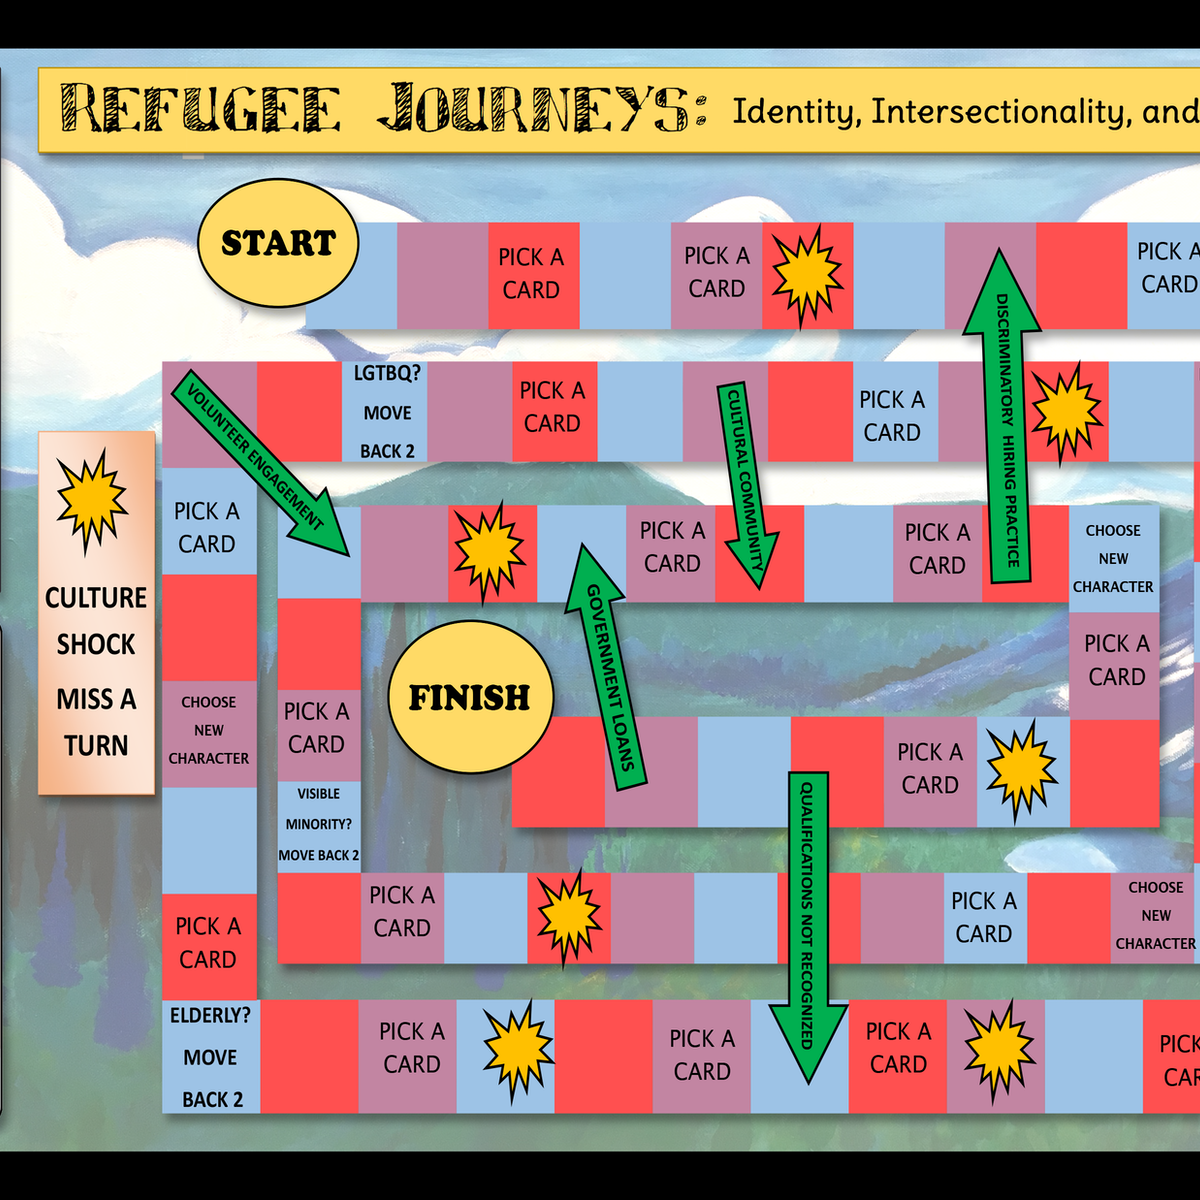 Playing this board game will challenge your ideas about refugees